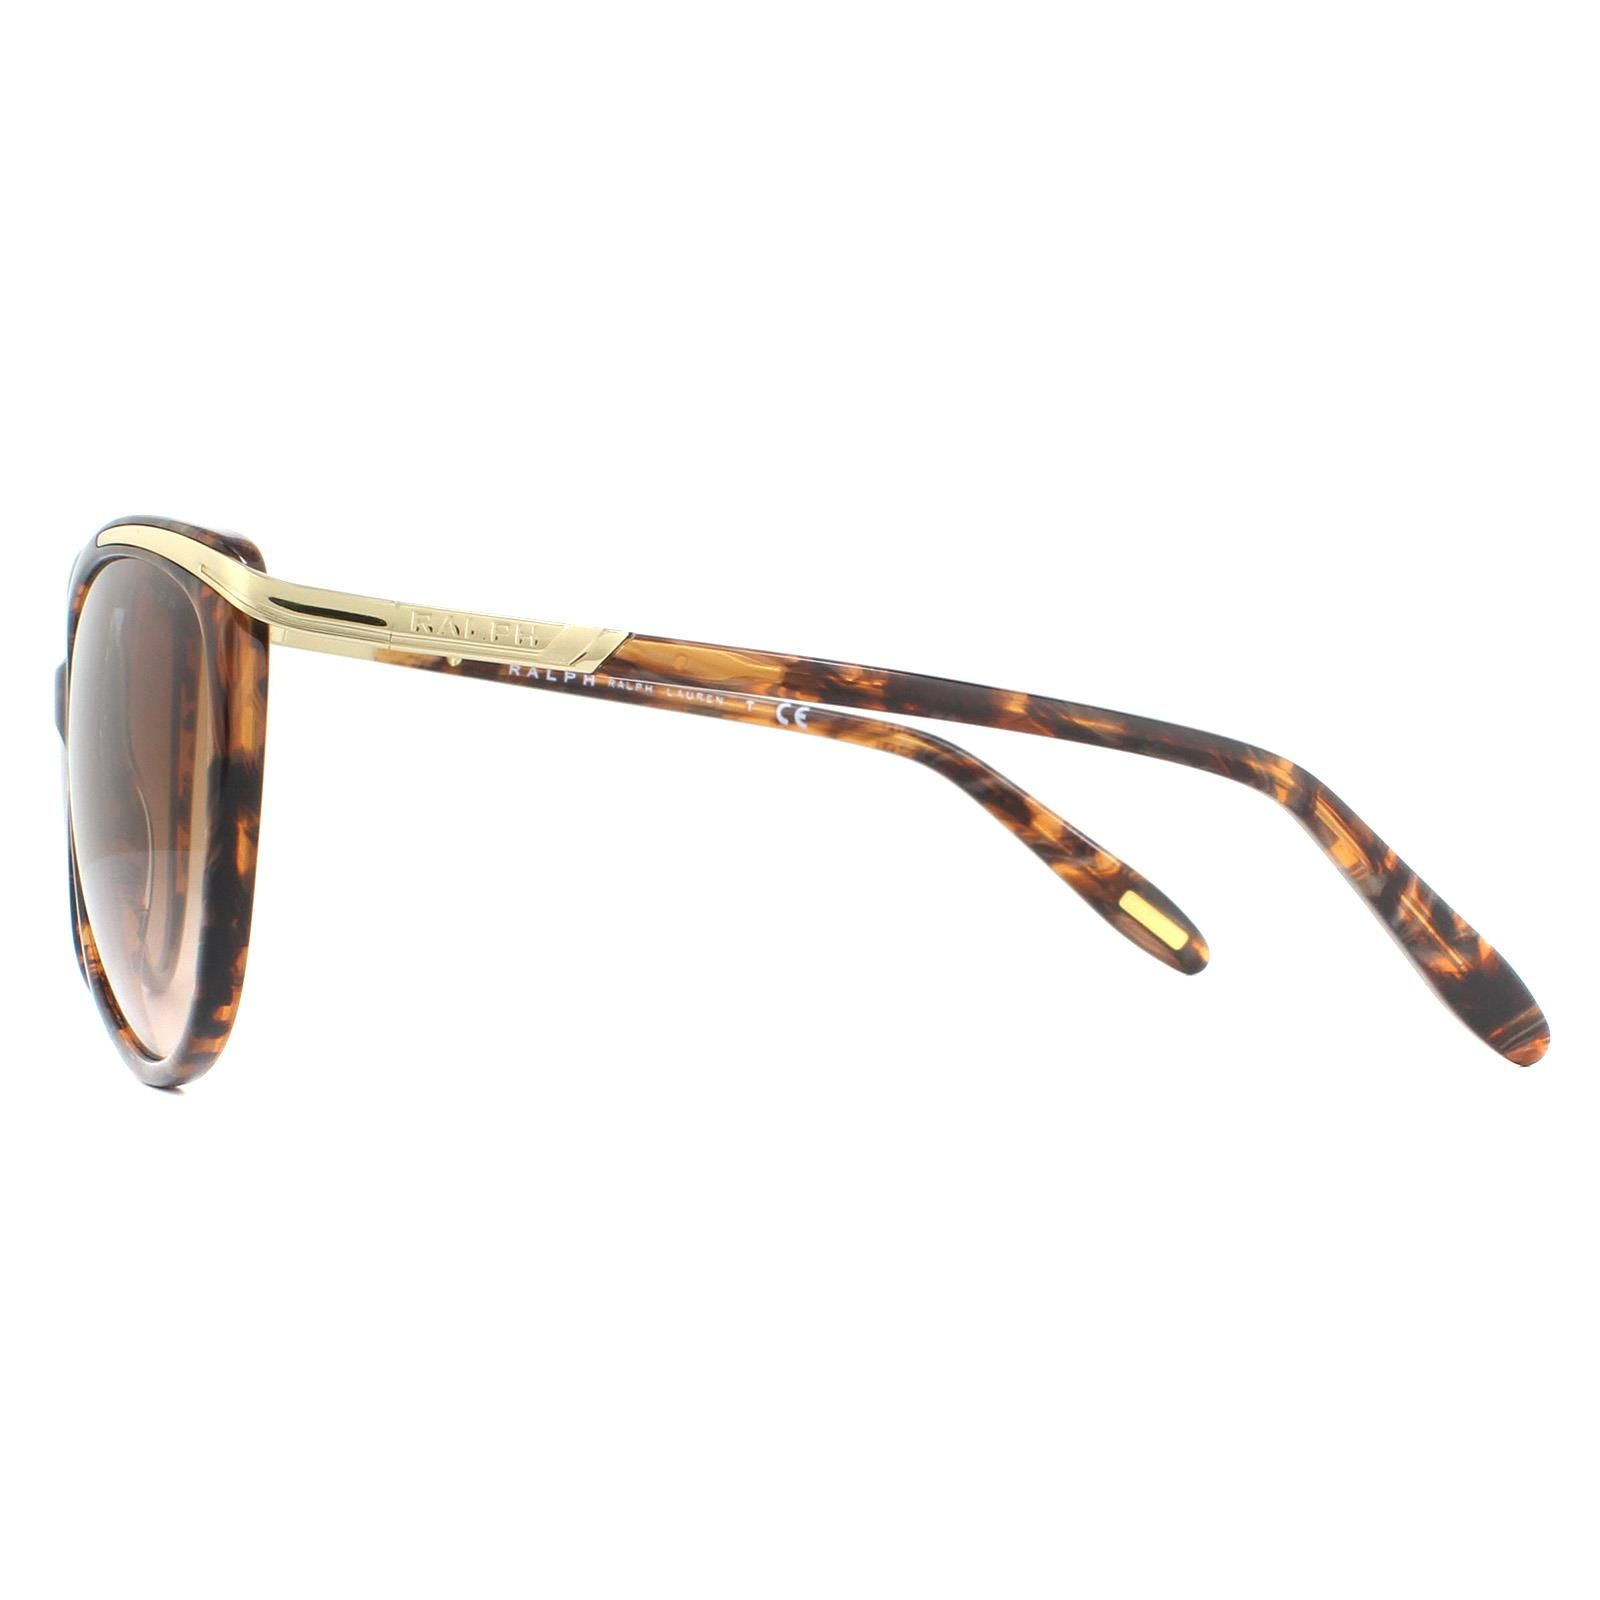 Ralph by Ralph Lauren Sunglasses 5150 573813 Shiny Brown Marble Pale Gold Brown Gradient